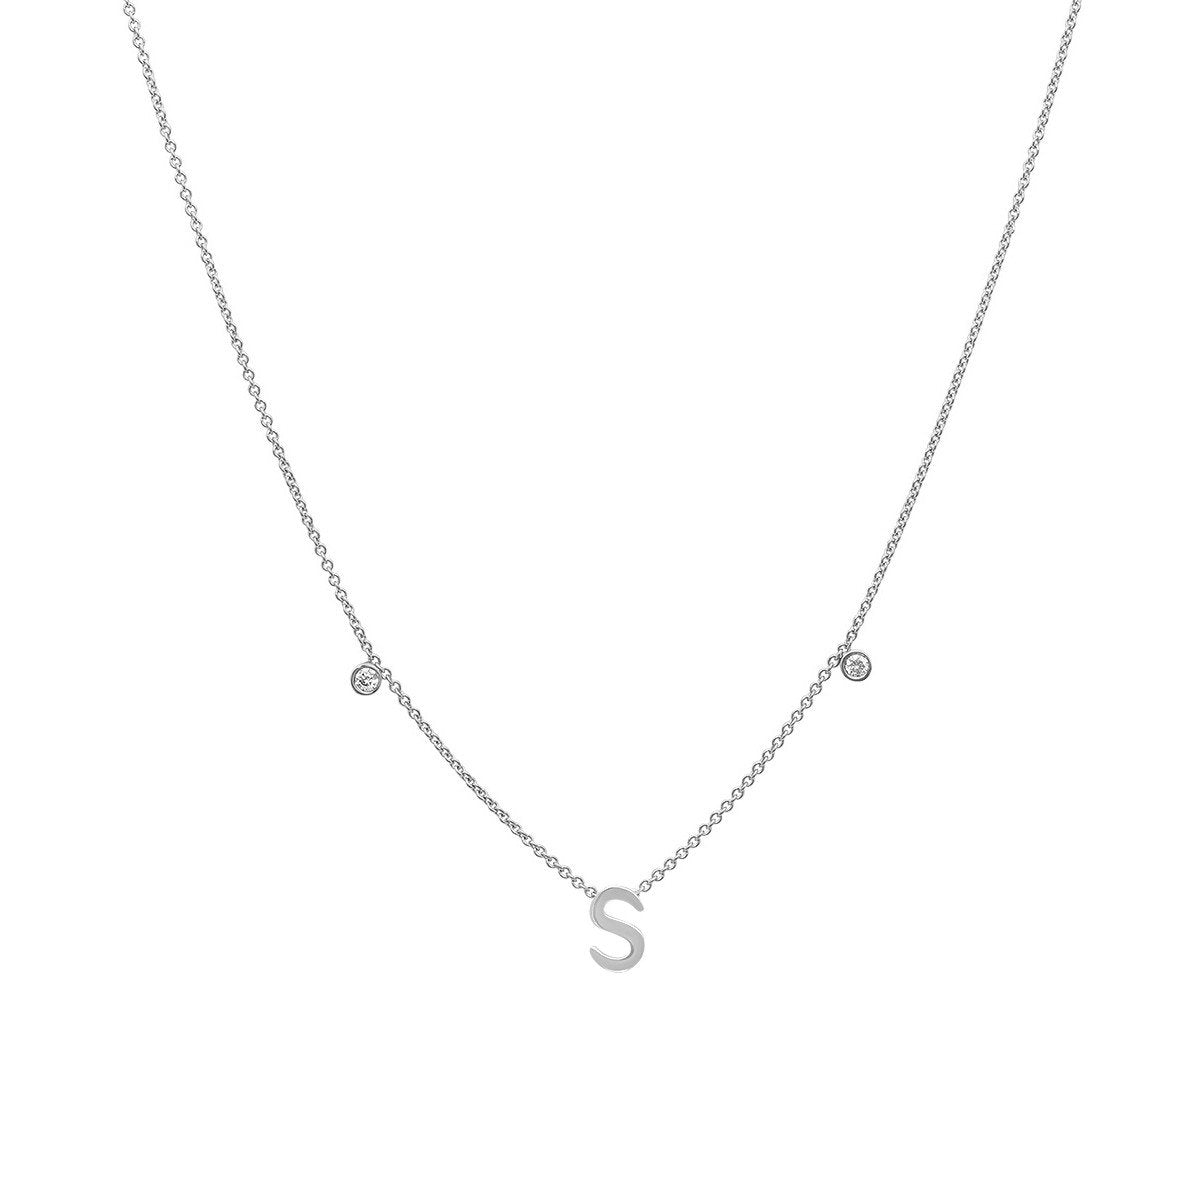 INITIAL & DIAMOND NECKLACE - 14K WHITE